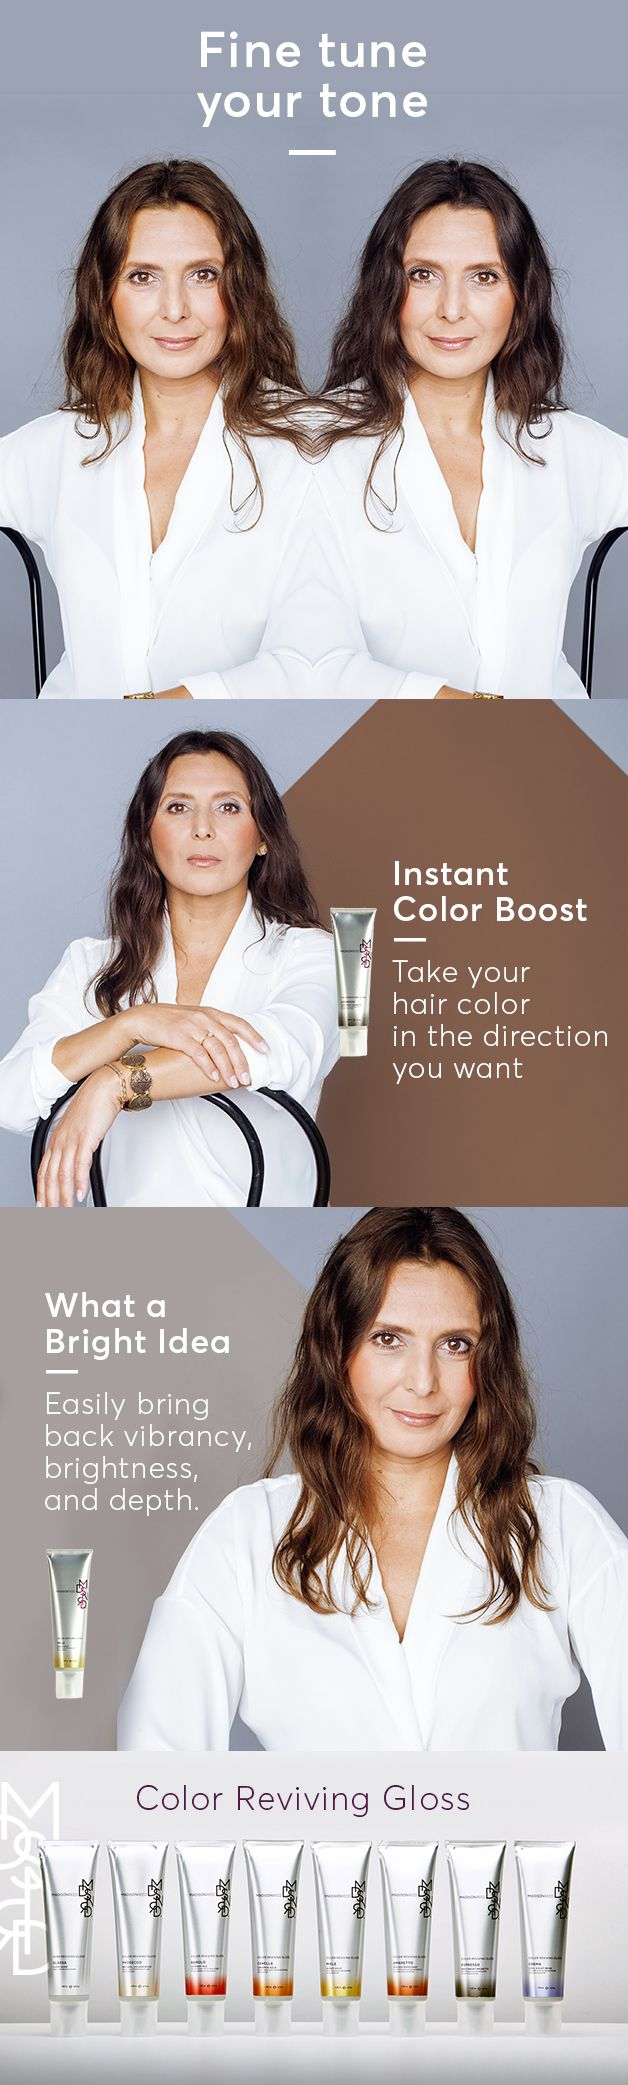 Take your hair color in the direction you want by boosting tone with